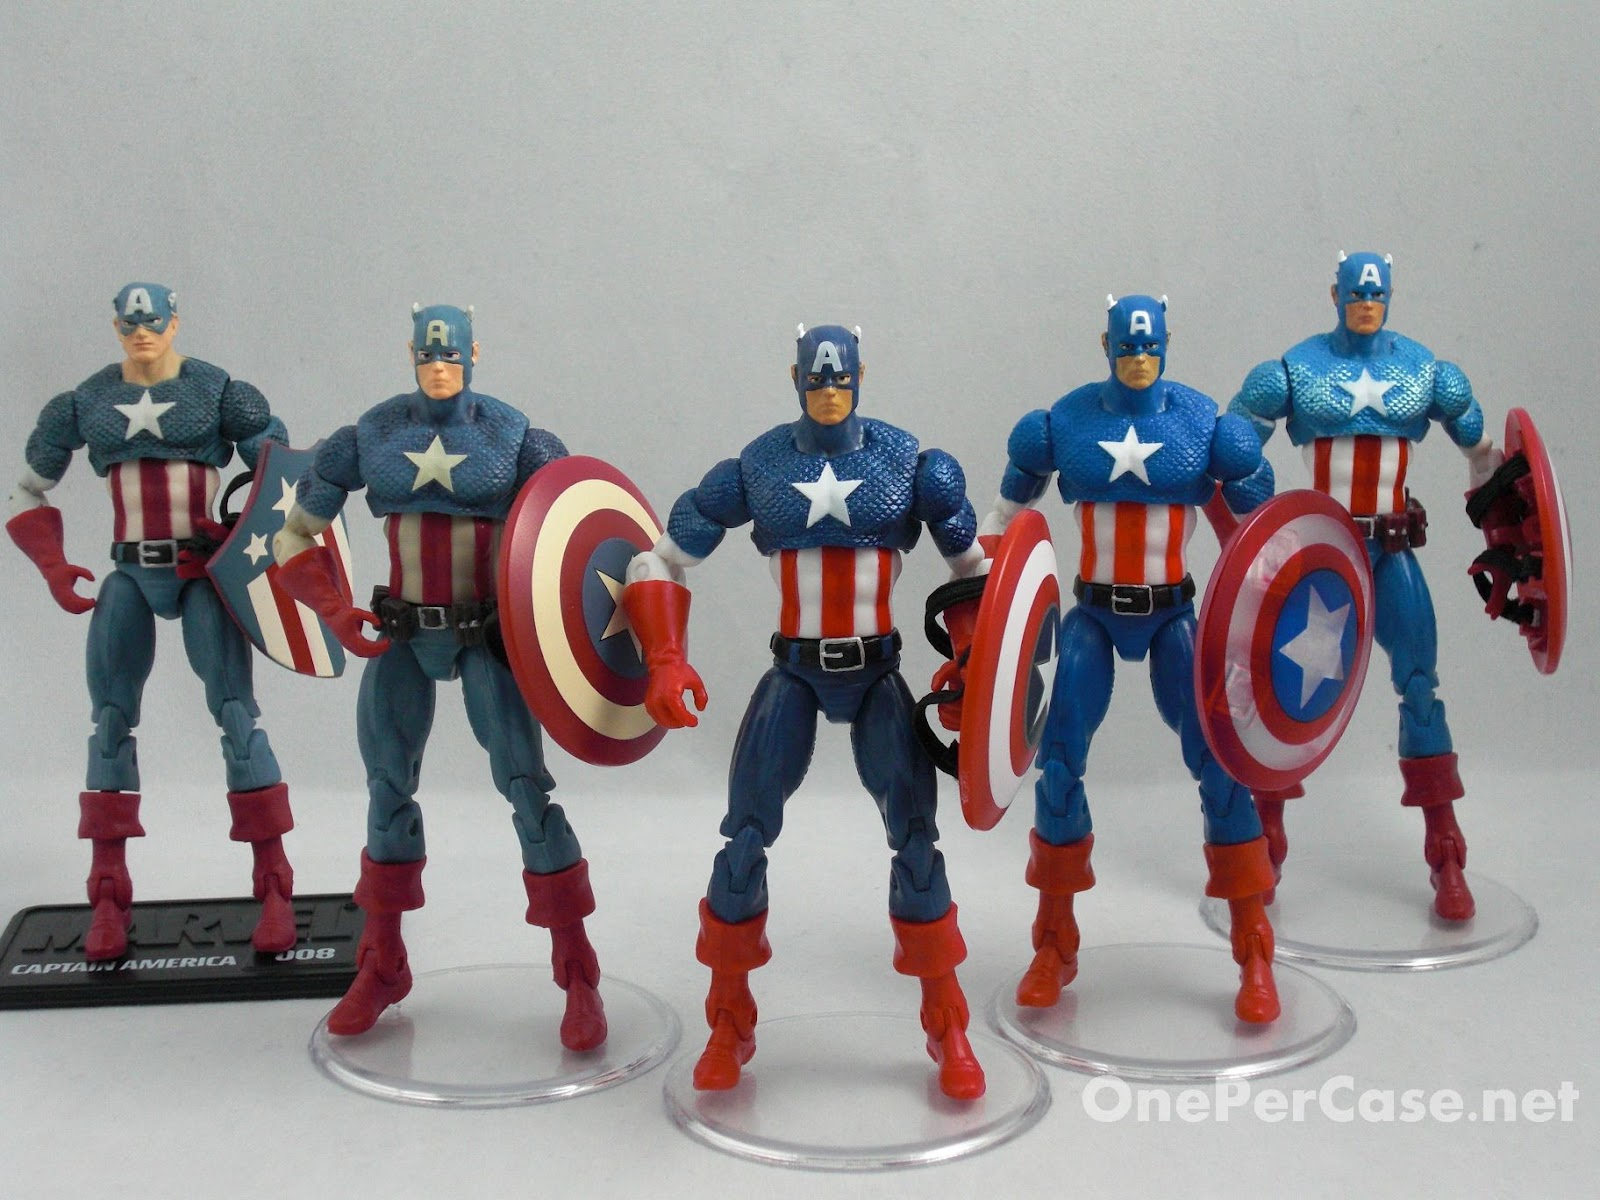 One Per Case: Marvel Universe Avengers Light-Up Base Wave 2 - Captain America (Rogers)